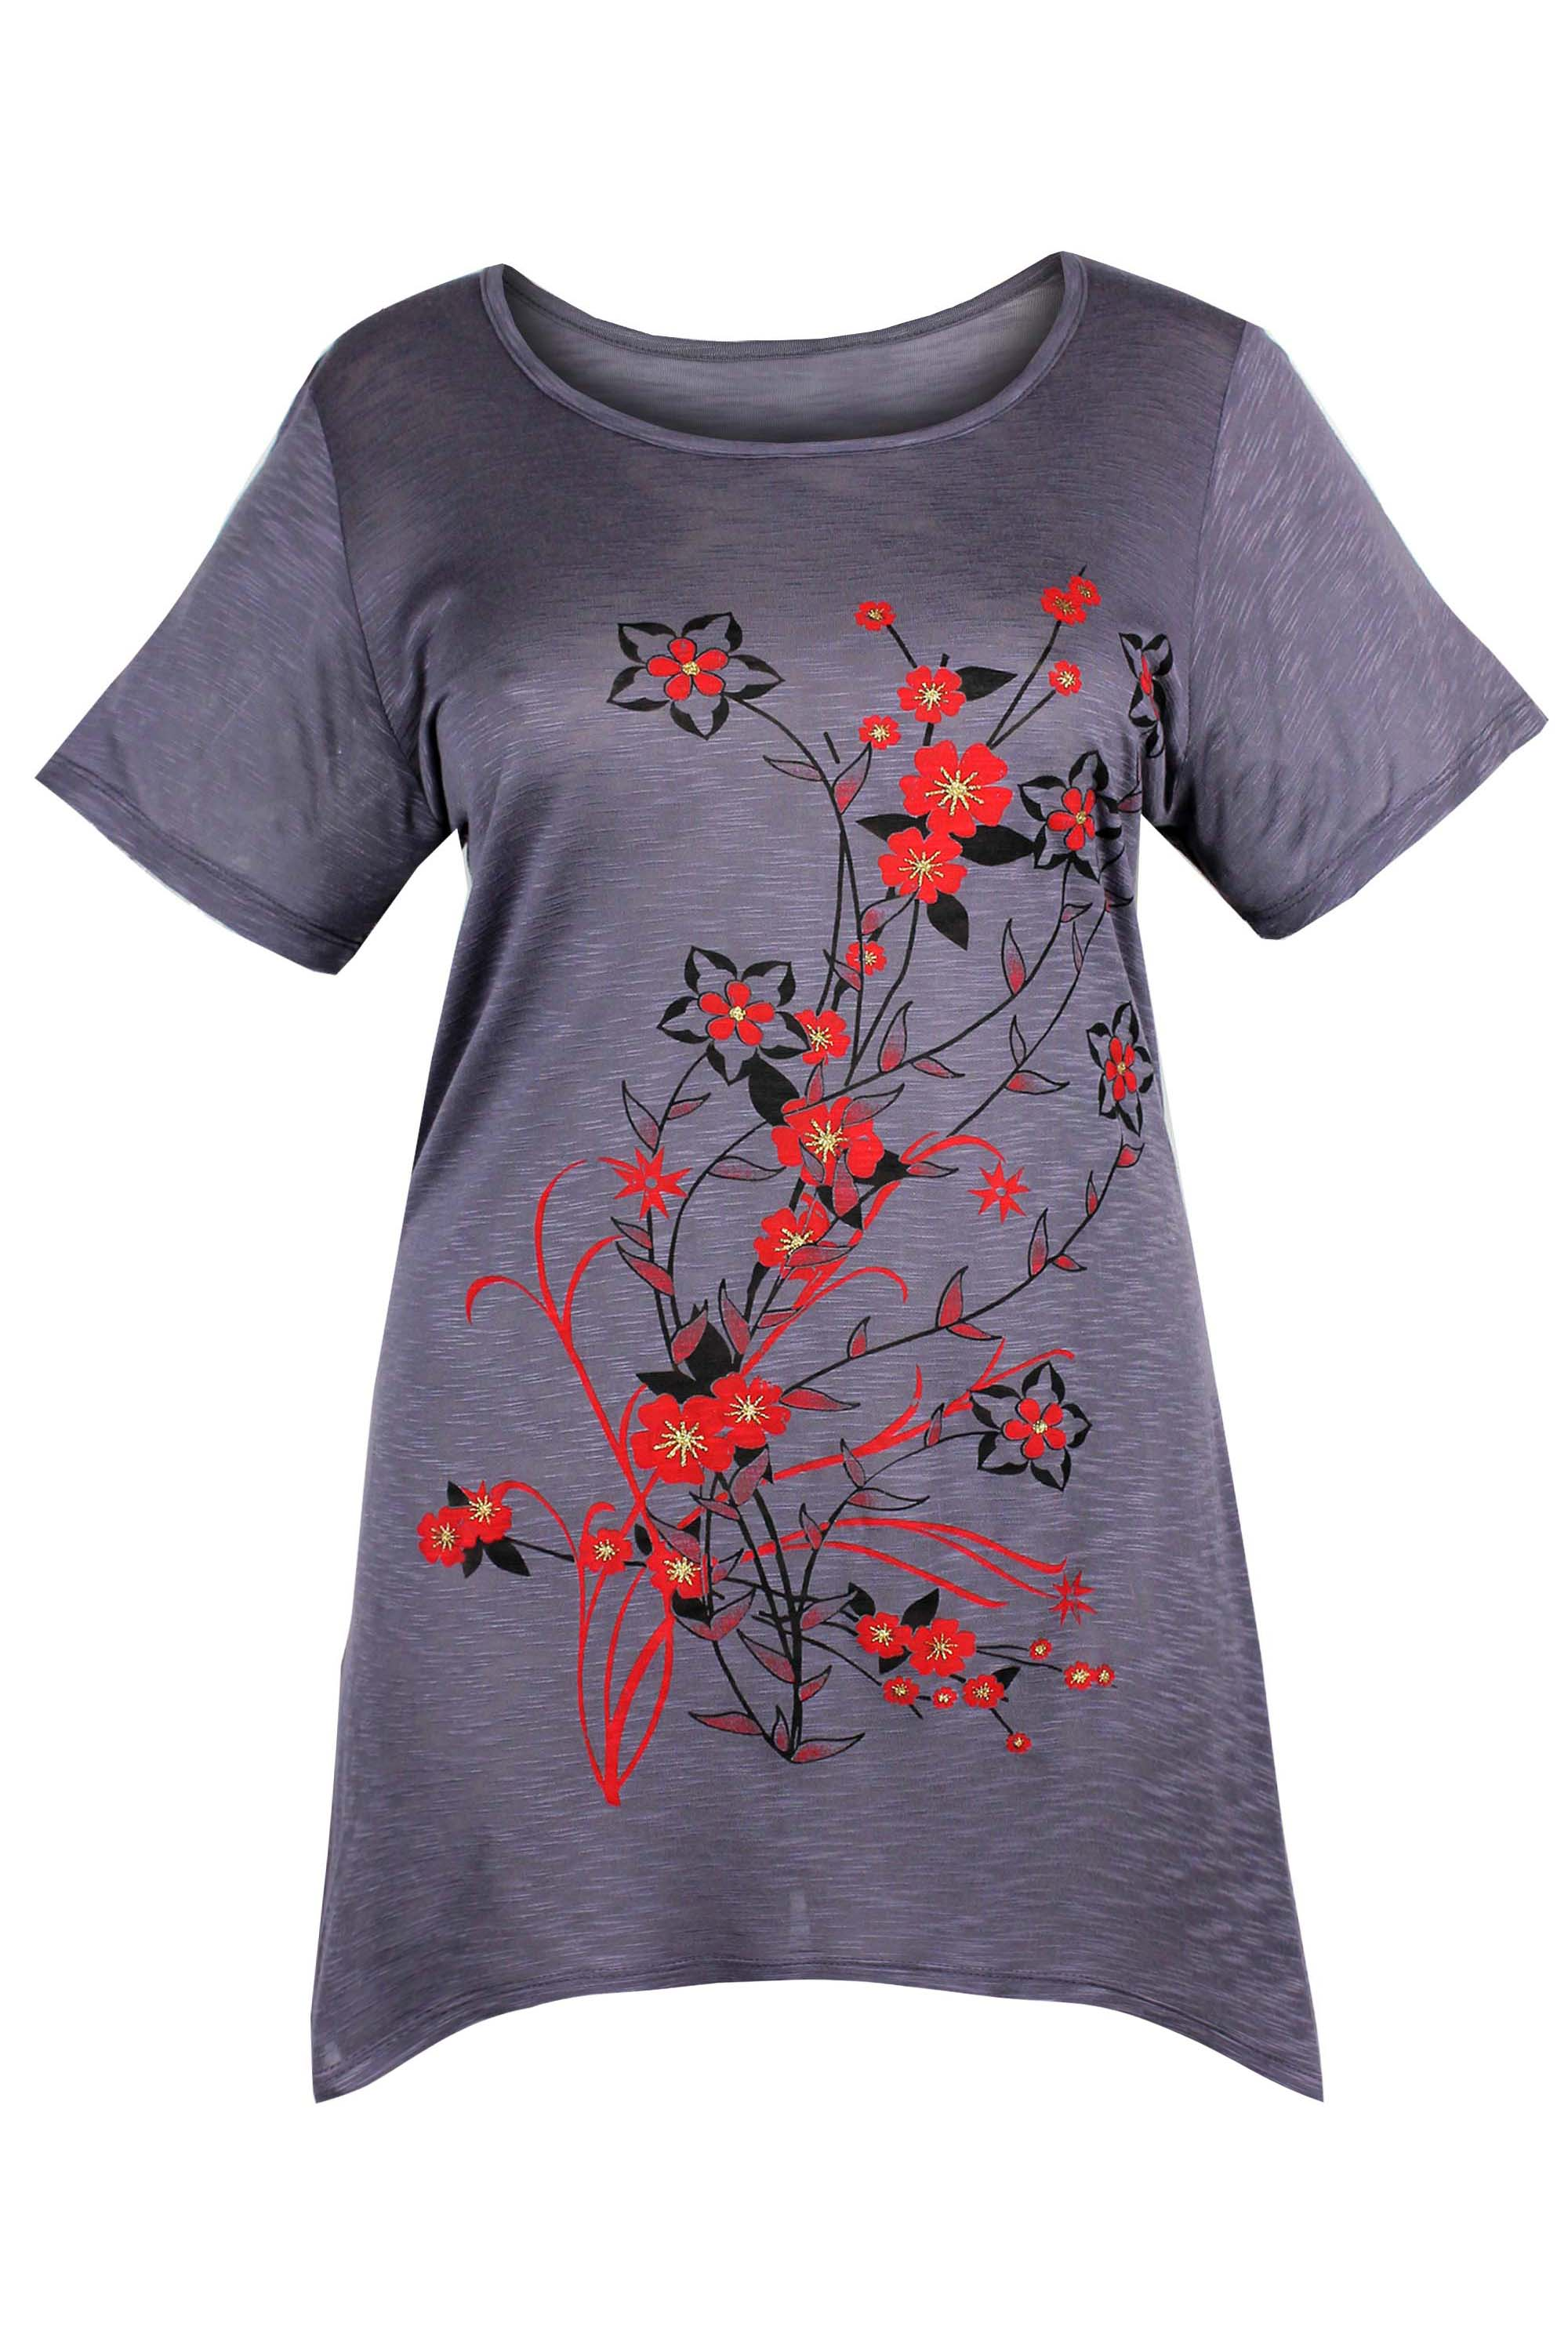 Ladies Womens Plus Size Short Sleeve Floral Print T Shirt Top